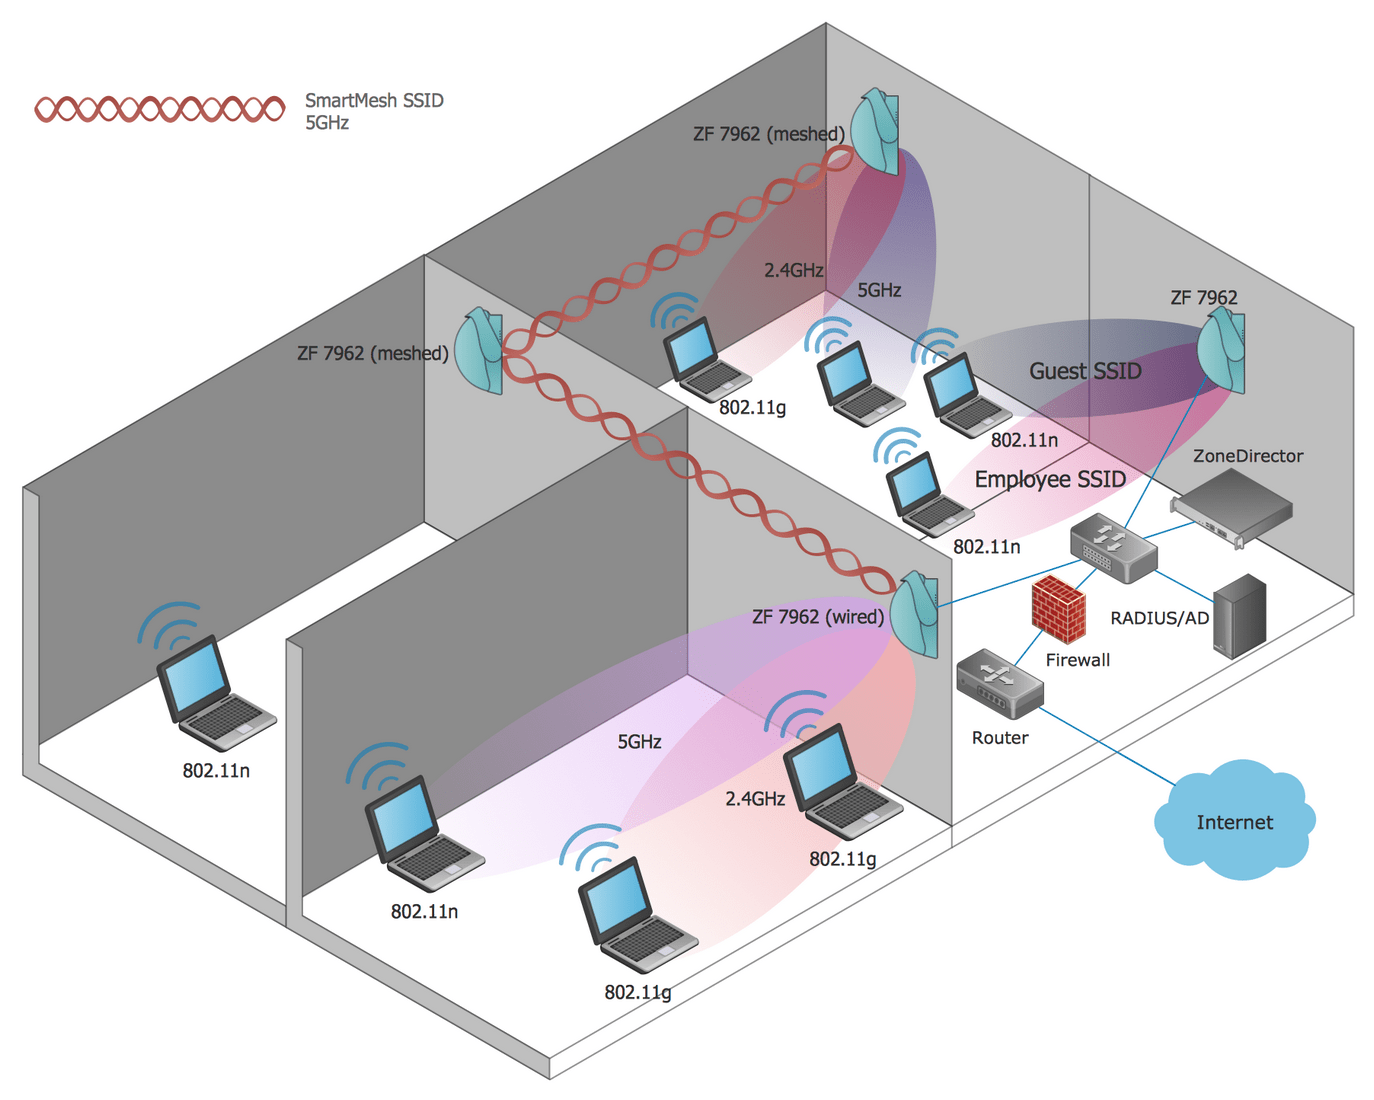 hight resolution of this wireless network diagram sample depicts the wireless mesh network of an enterprise enterprise wmn